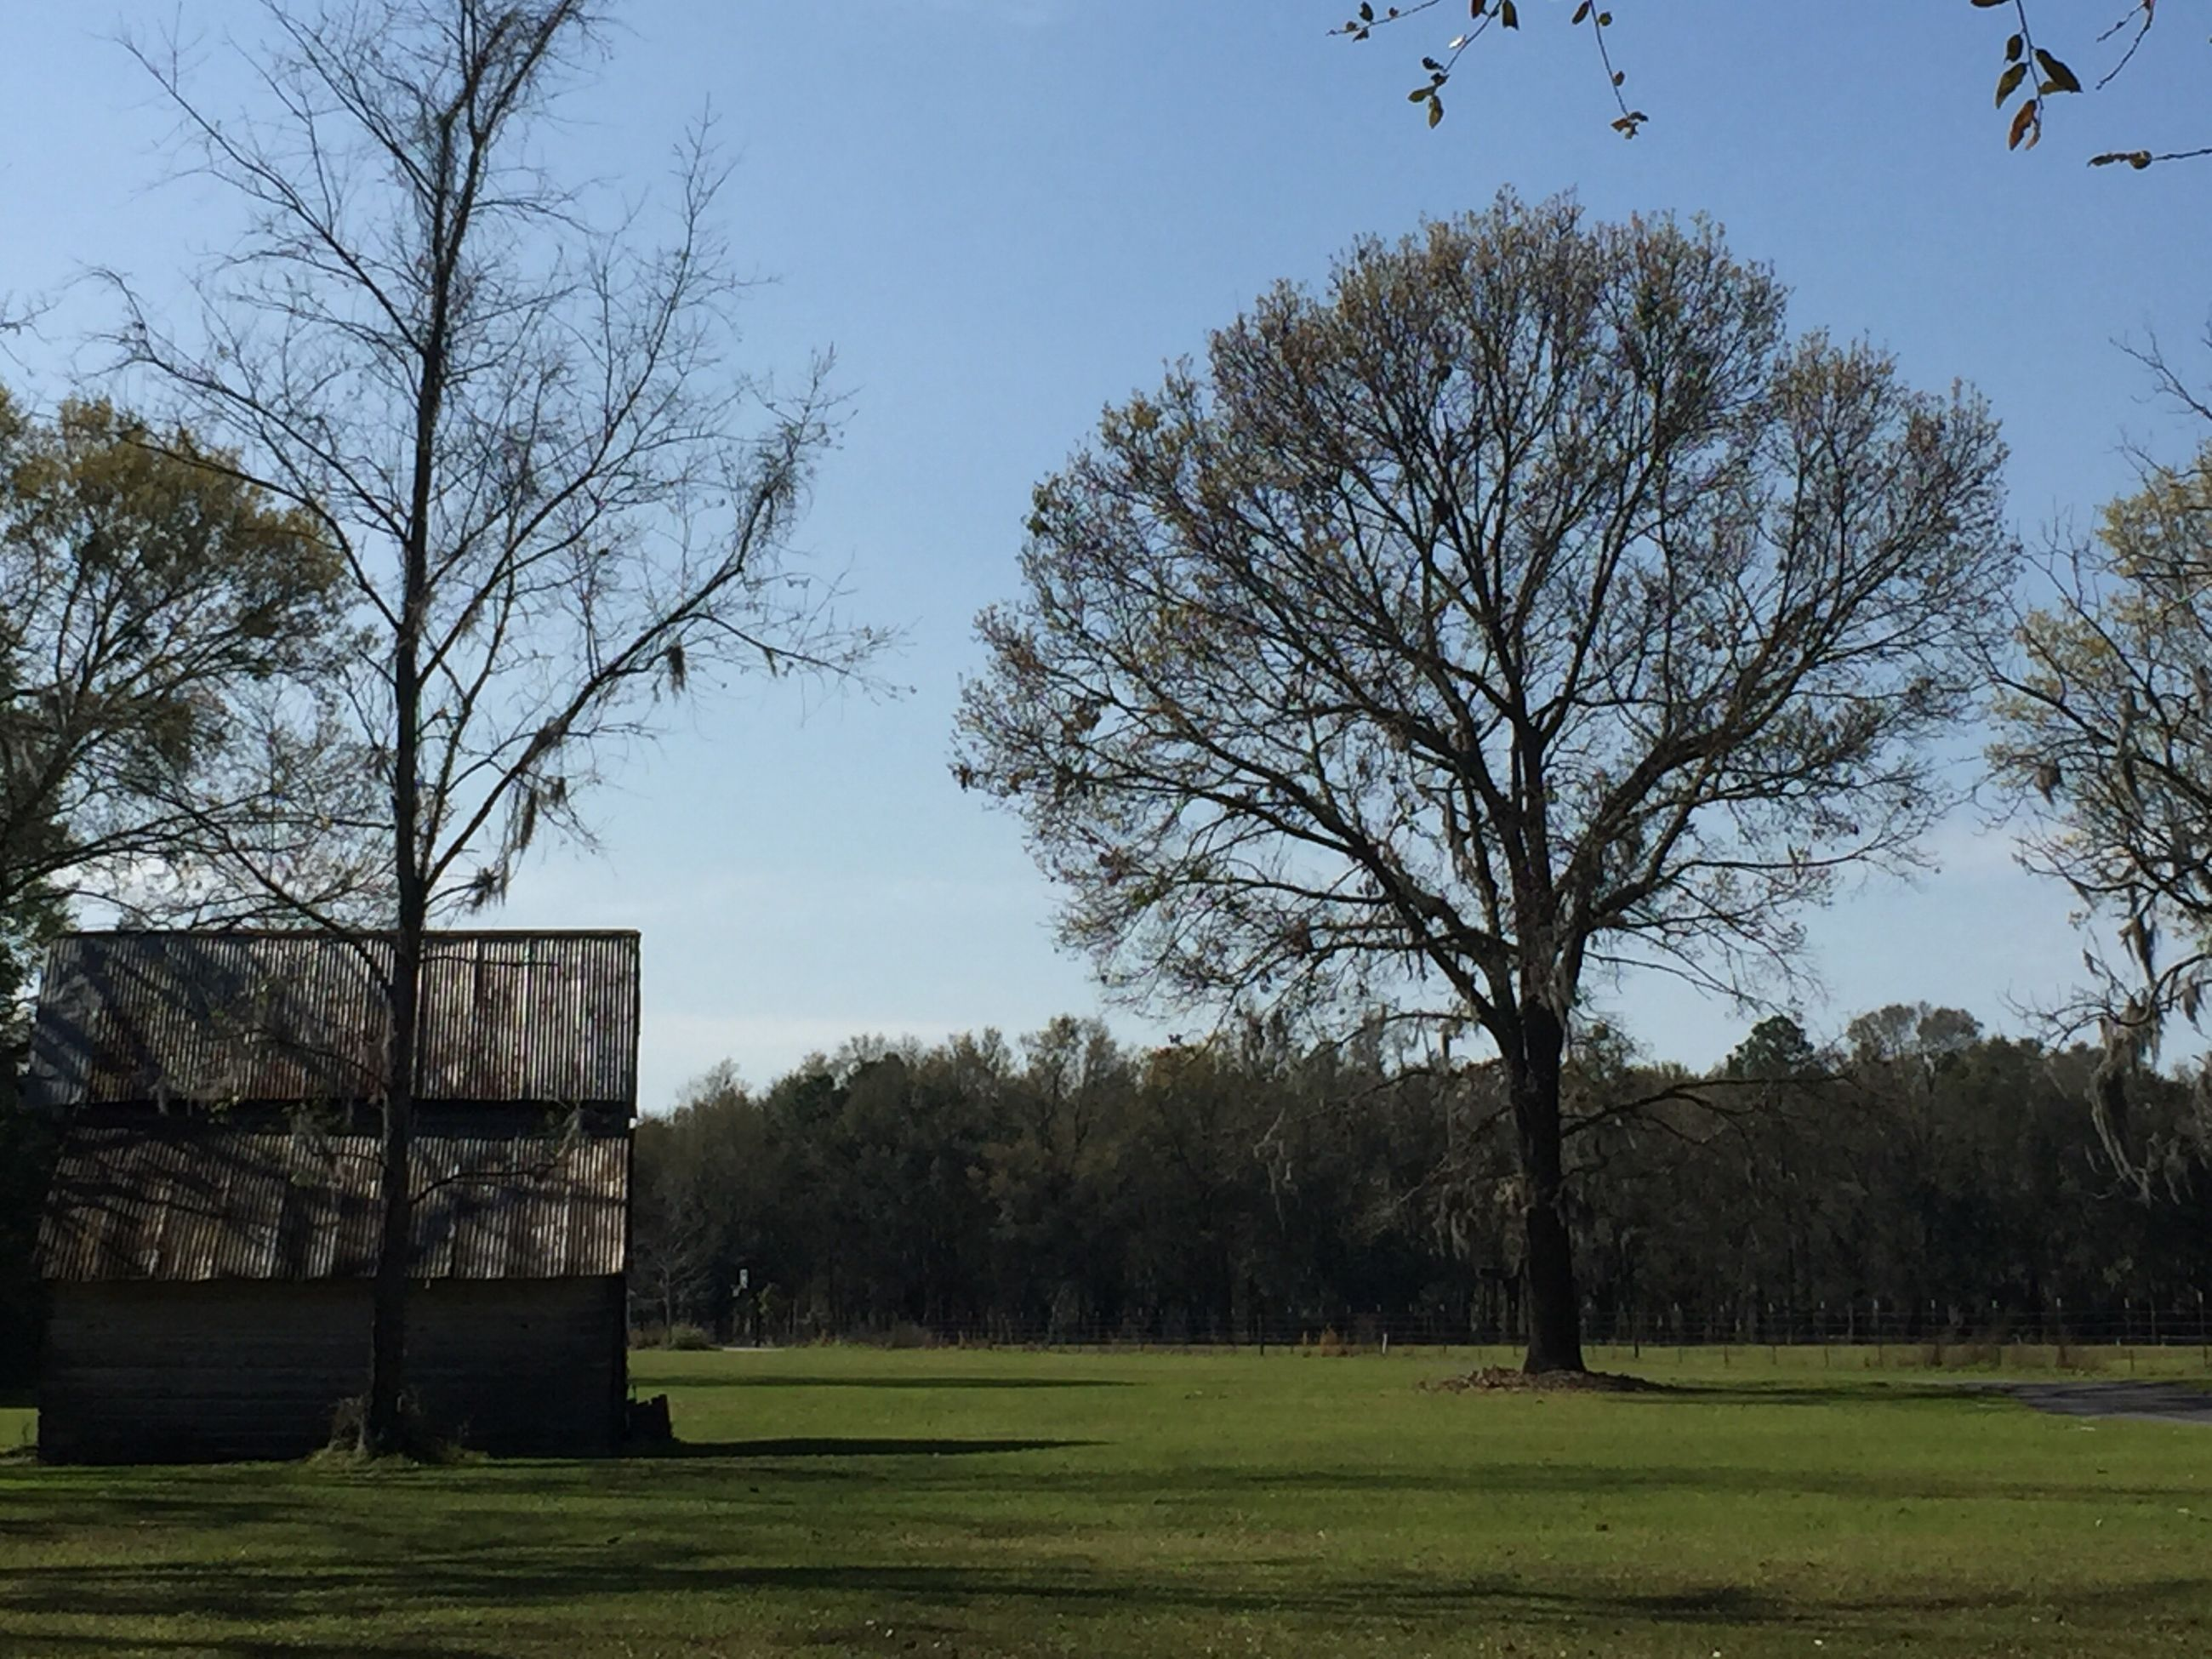 tree, nature, outdoors, no people, day, growth, grass, sky, beauty in nature, architecture